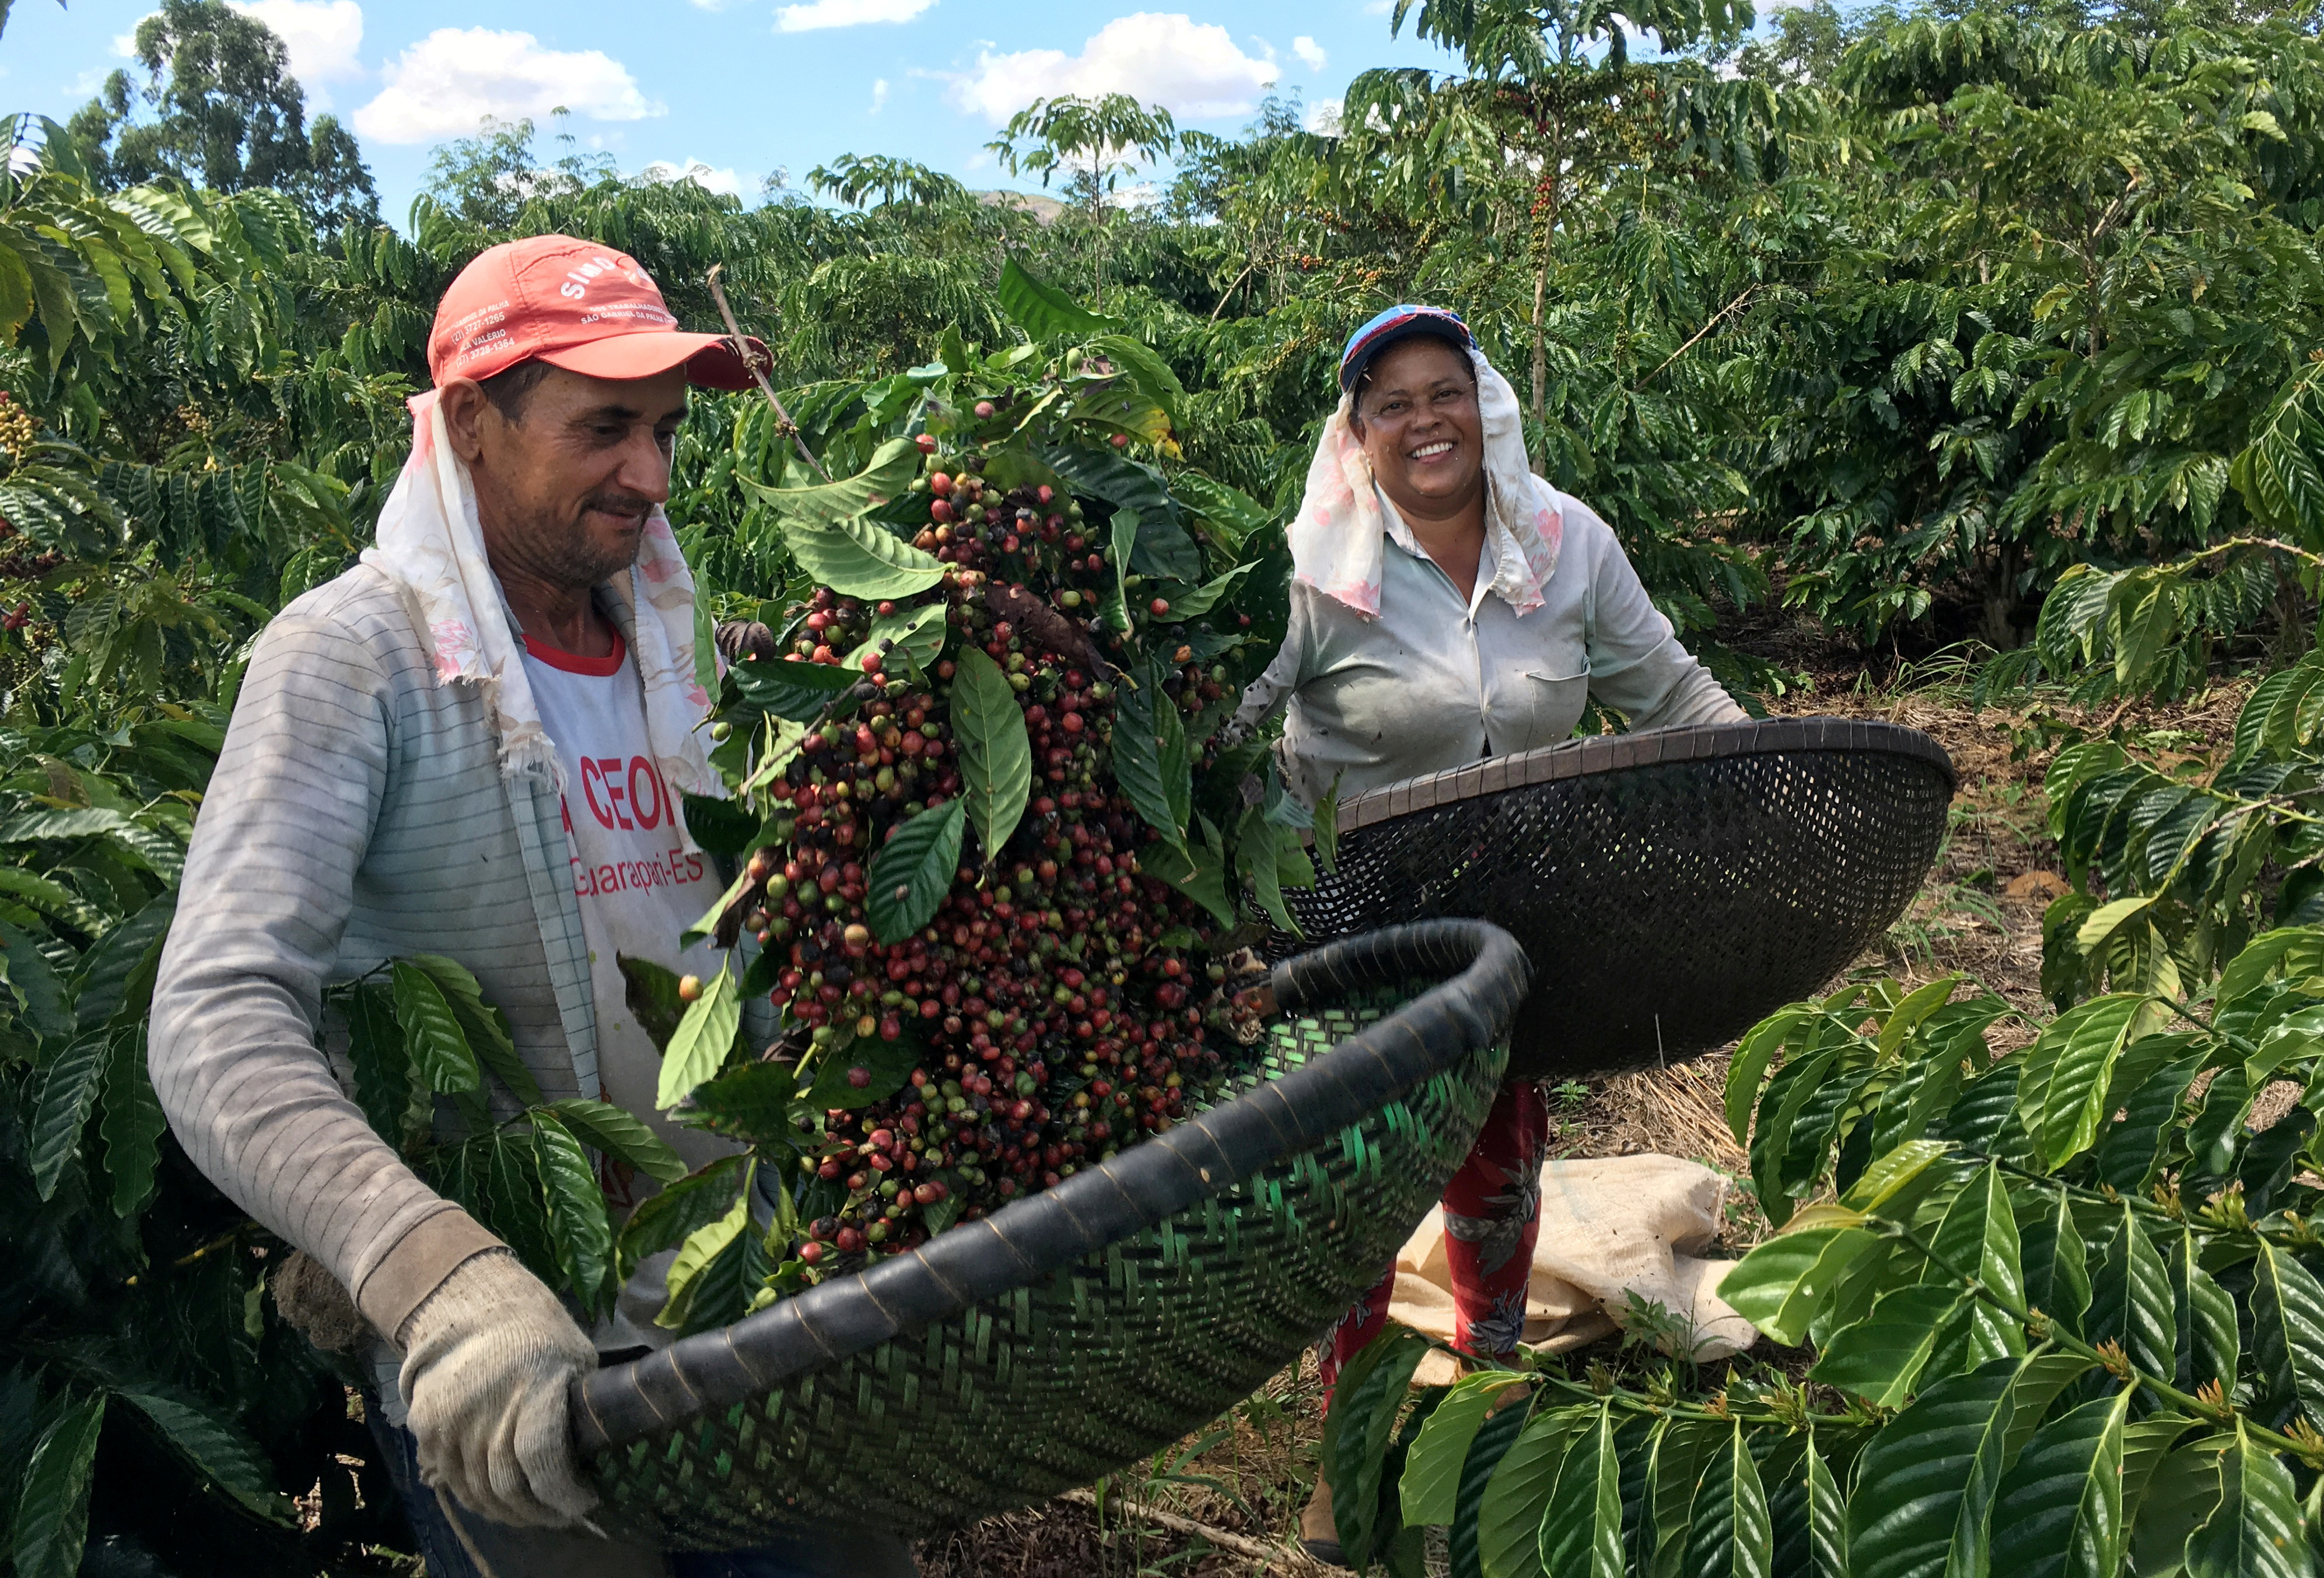 Workers show recently harvested robusta coffee in Sao Gabriel da Palha, Espirito Santo state, Brazil May 2, 2018. Picture taken May 2, 2018. REUTERS/Jose Roberto Gomes